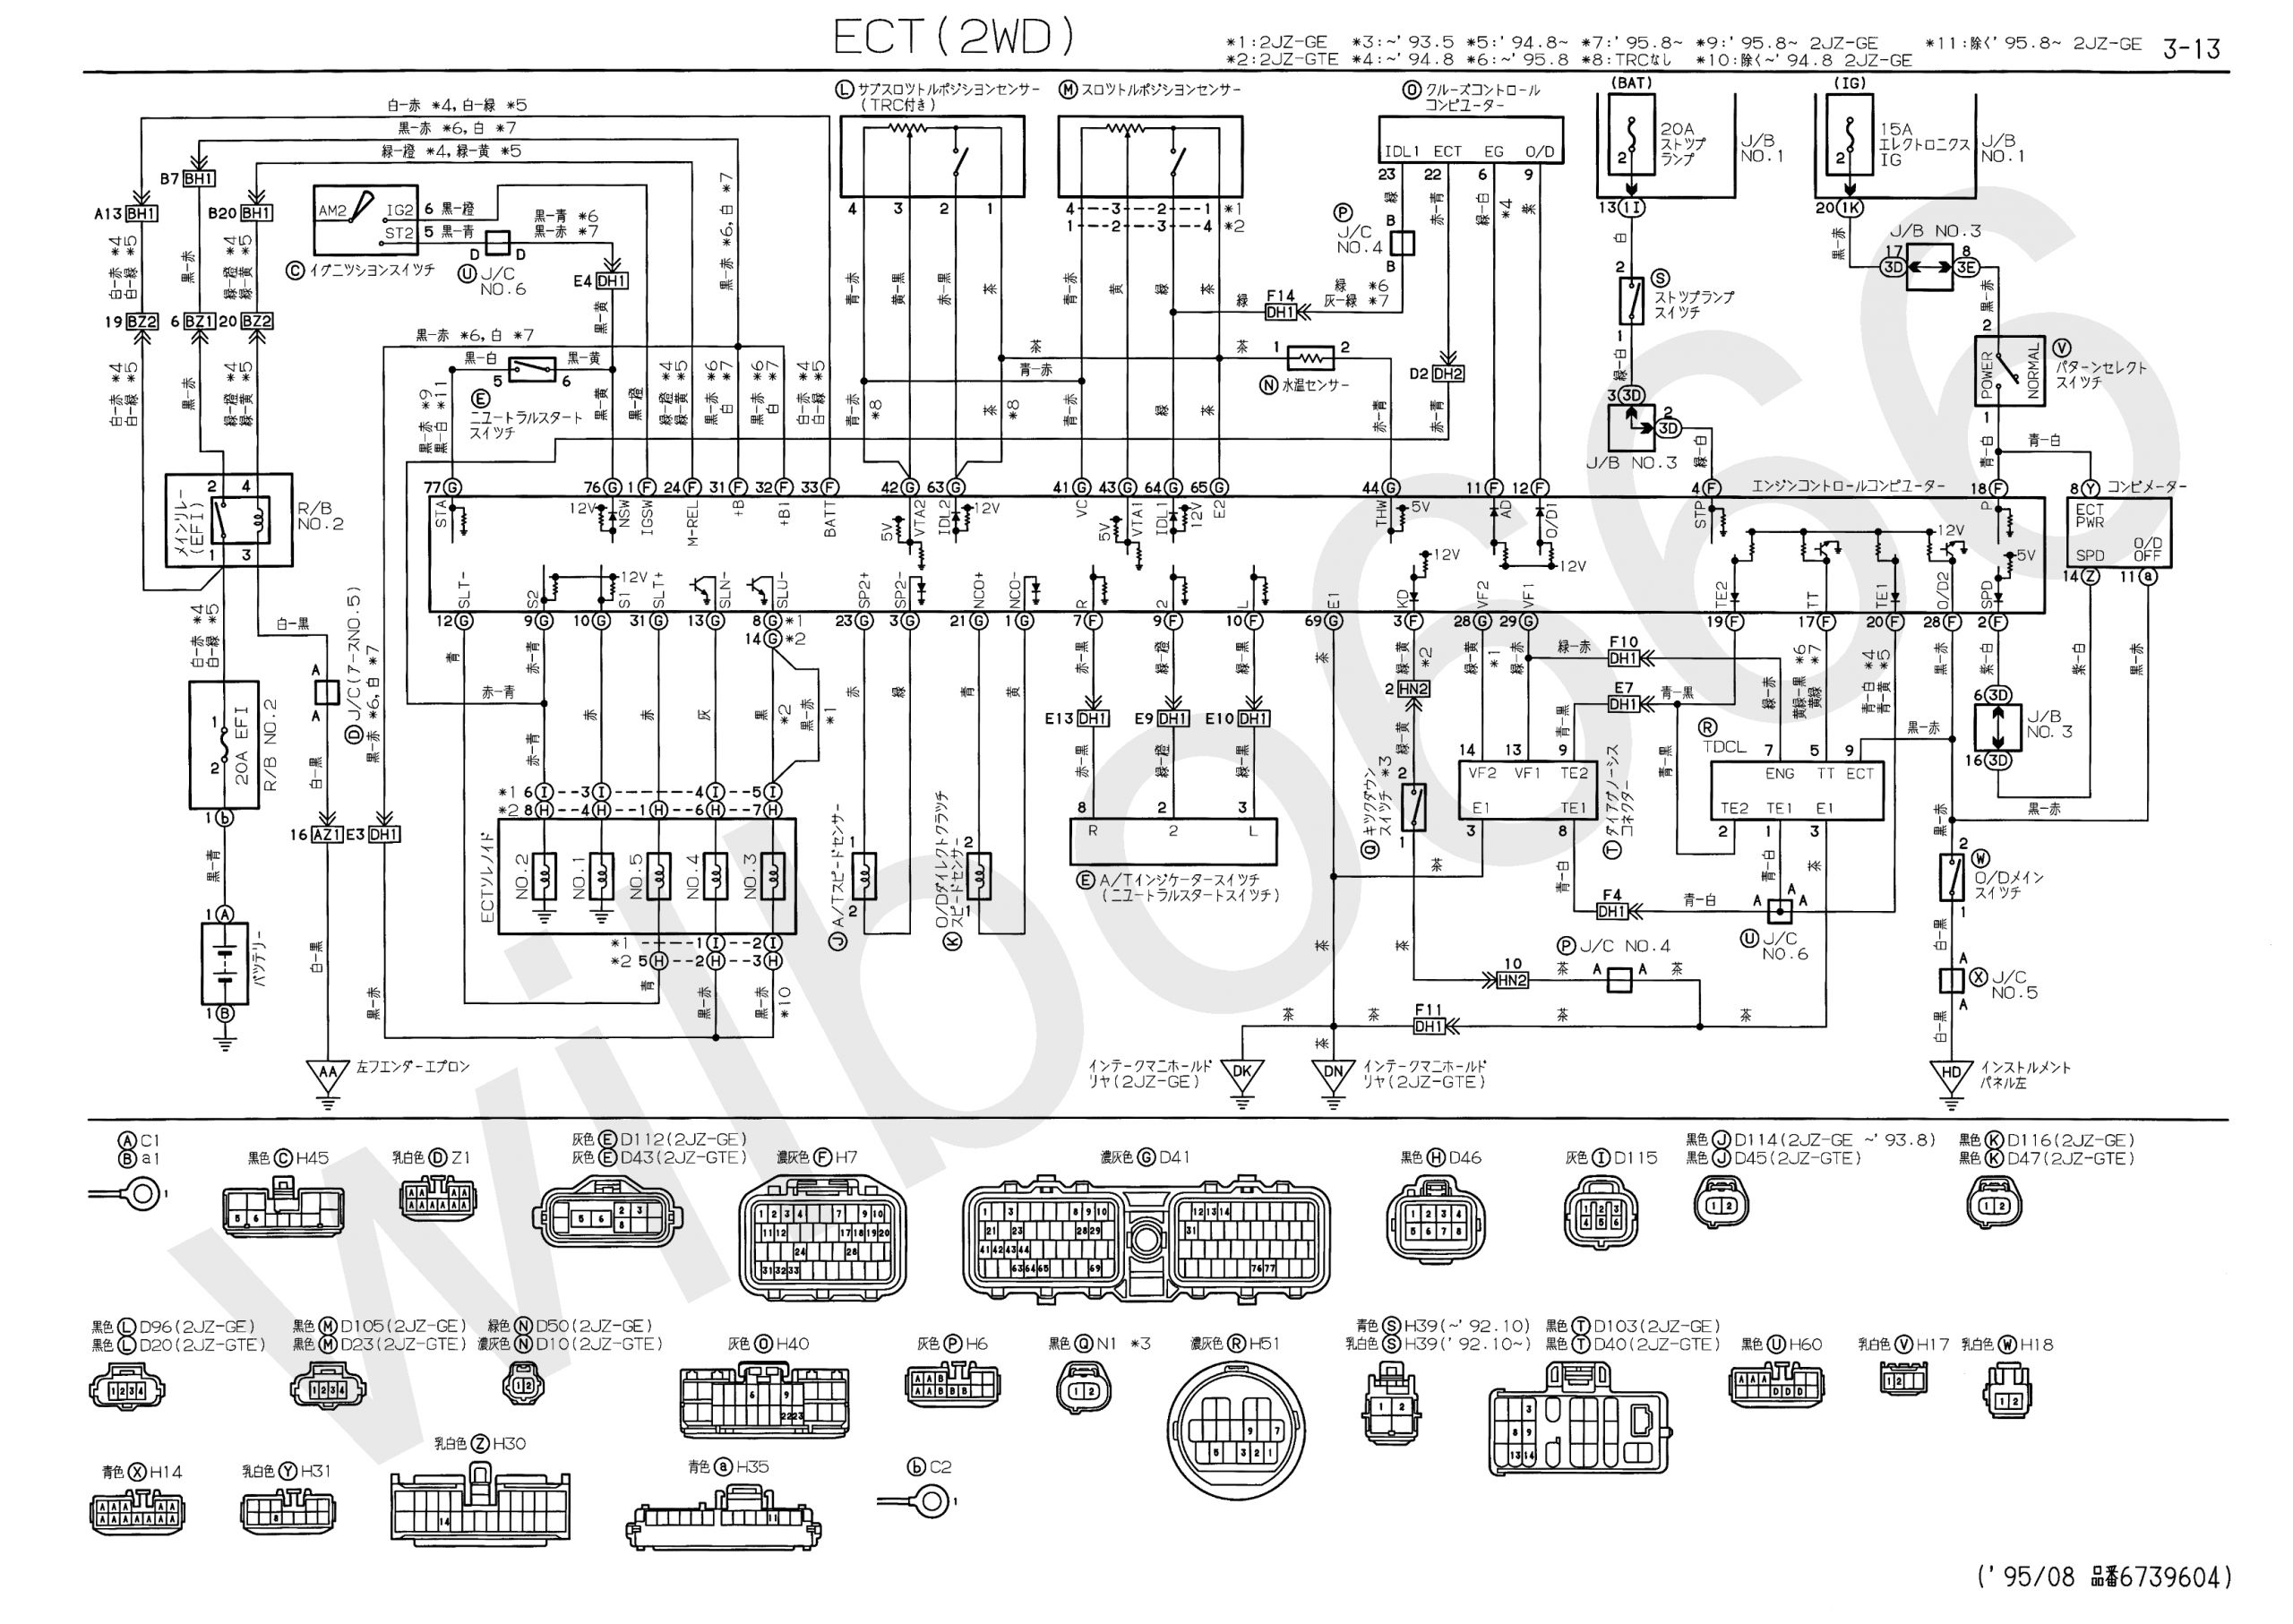 Engine Control toyota 89661 Wiring Diagram Wilbo666 2jz Gte Jzs147 Aristo Engine Wiring